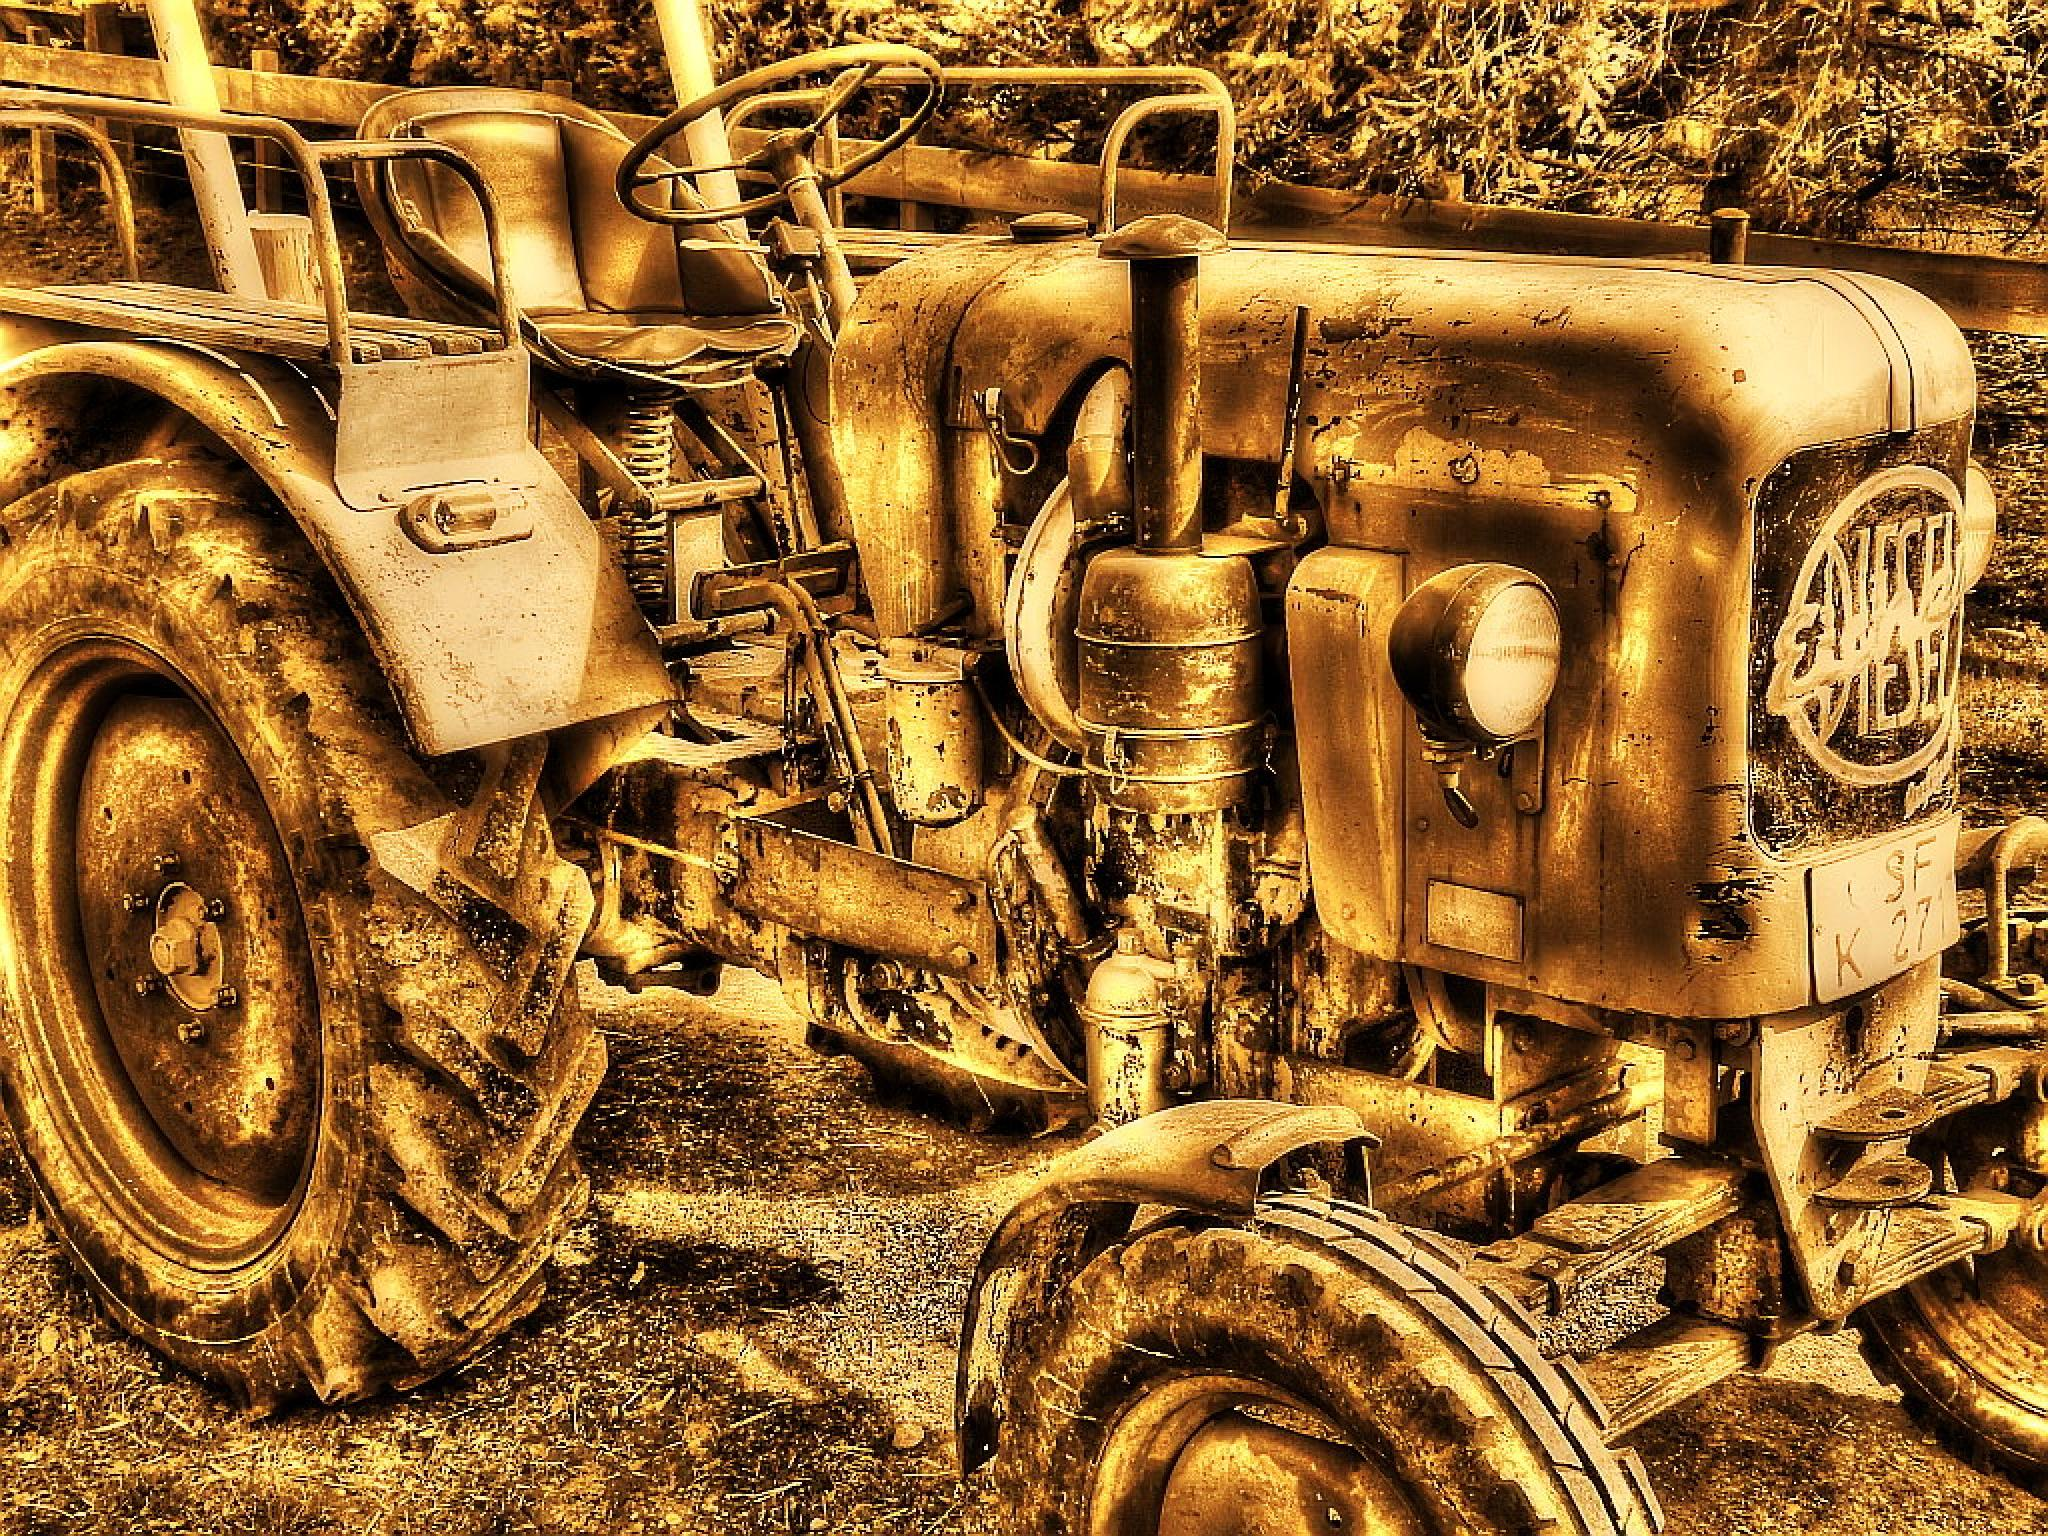 the golden Tractor by Frank Schmidt